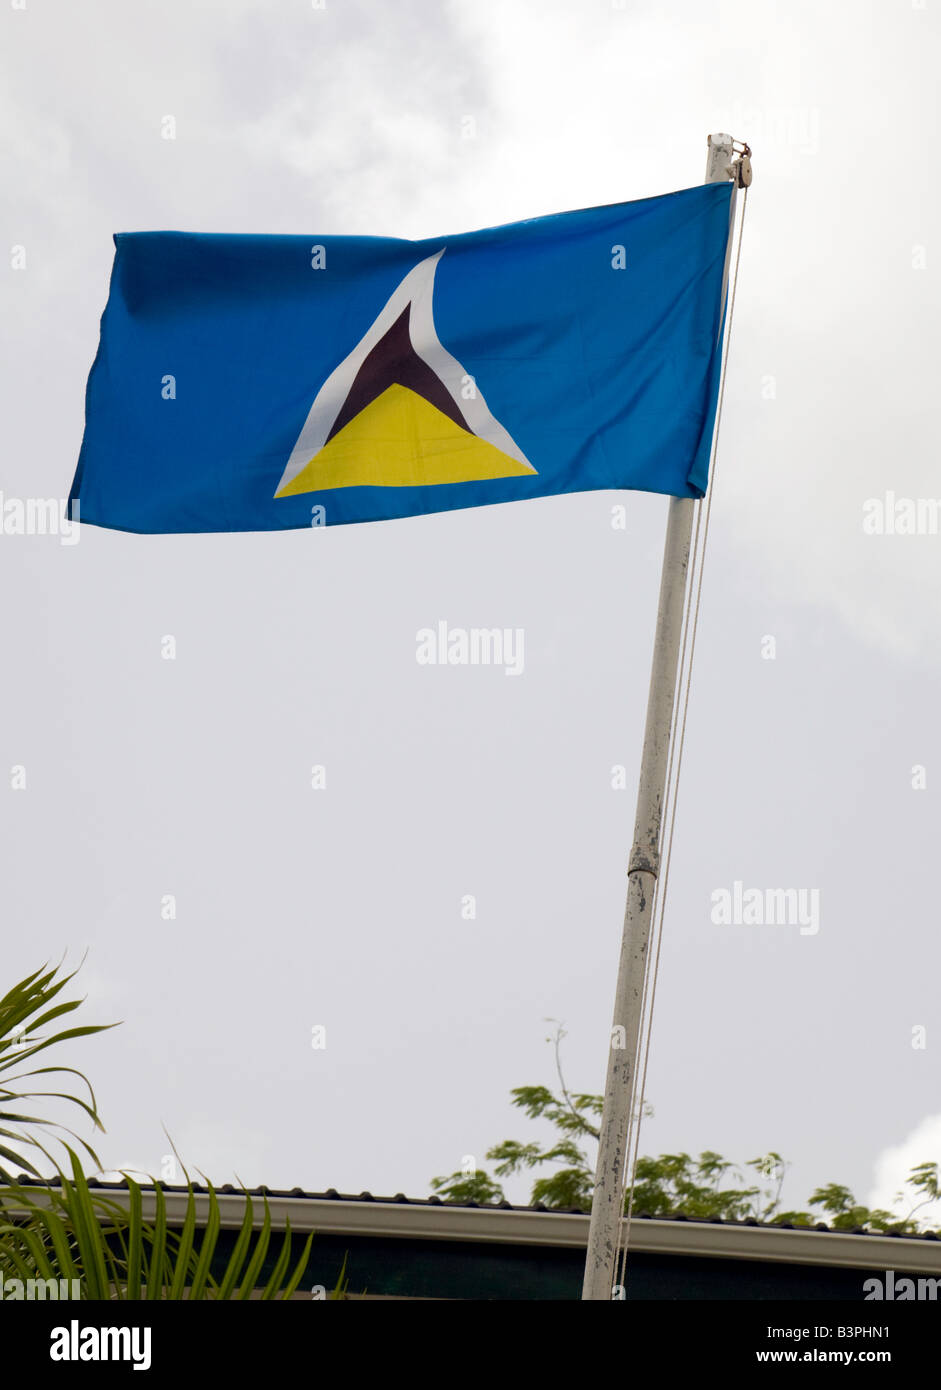 The flag of St Lucia,  St Lucia, 'West Indies' - Stock Image